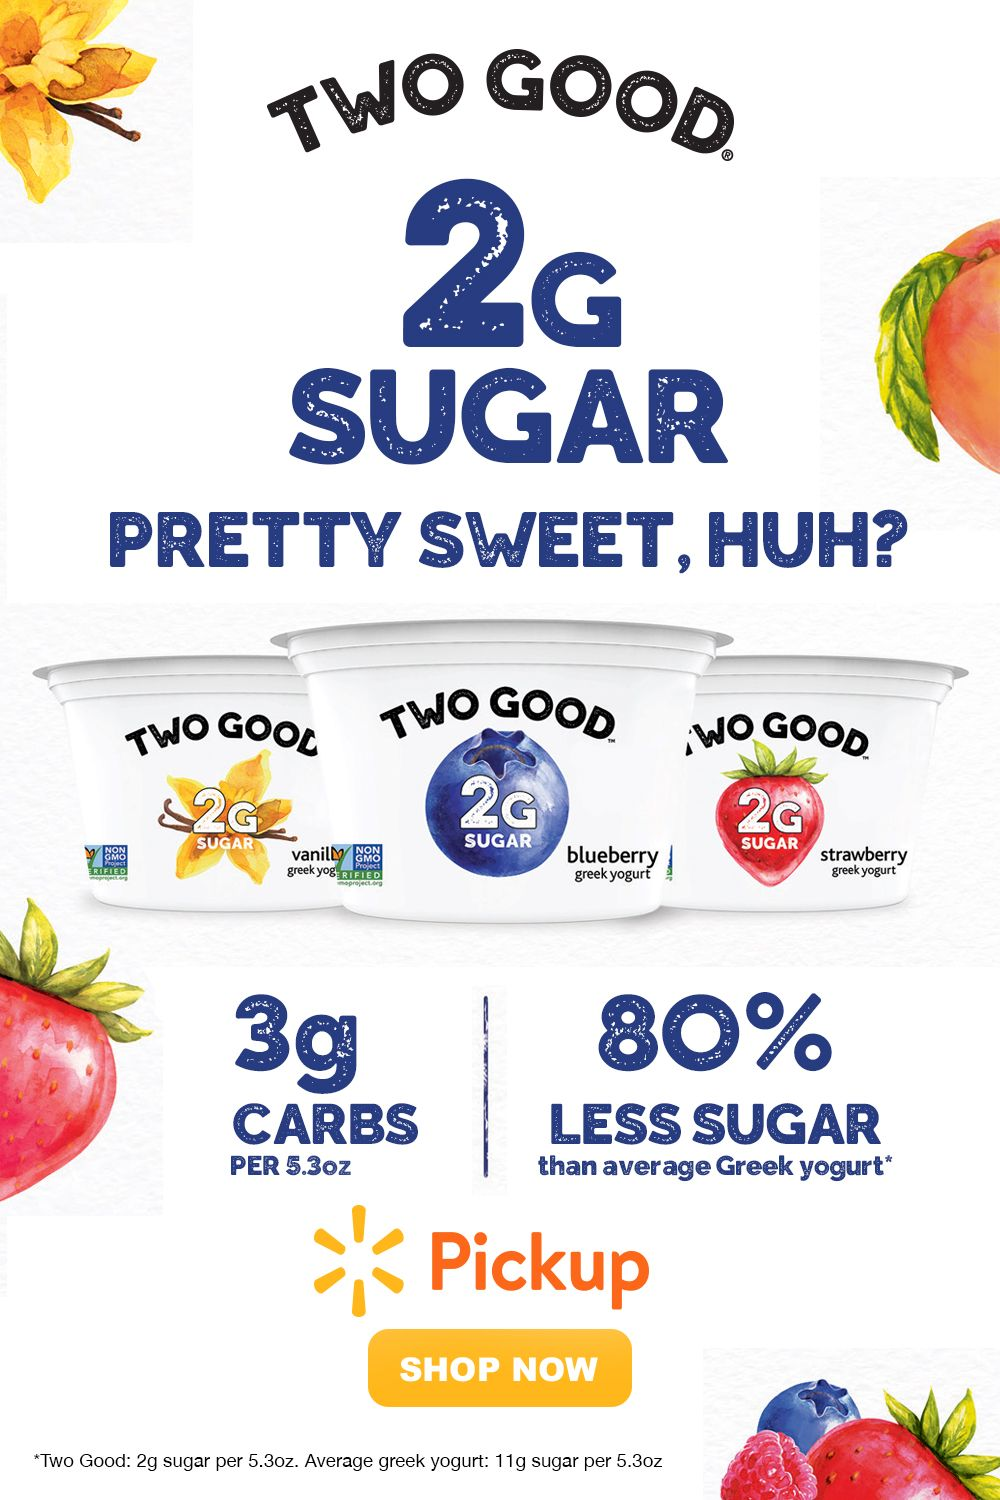 Pin by Angie Jones on Keto/Low Carb Life in 2020 Sugar